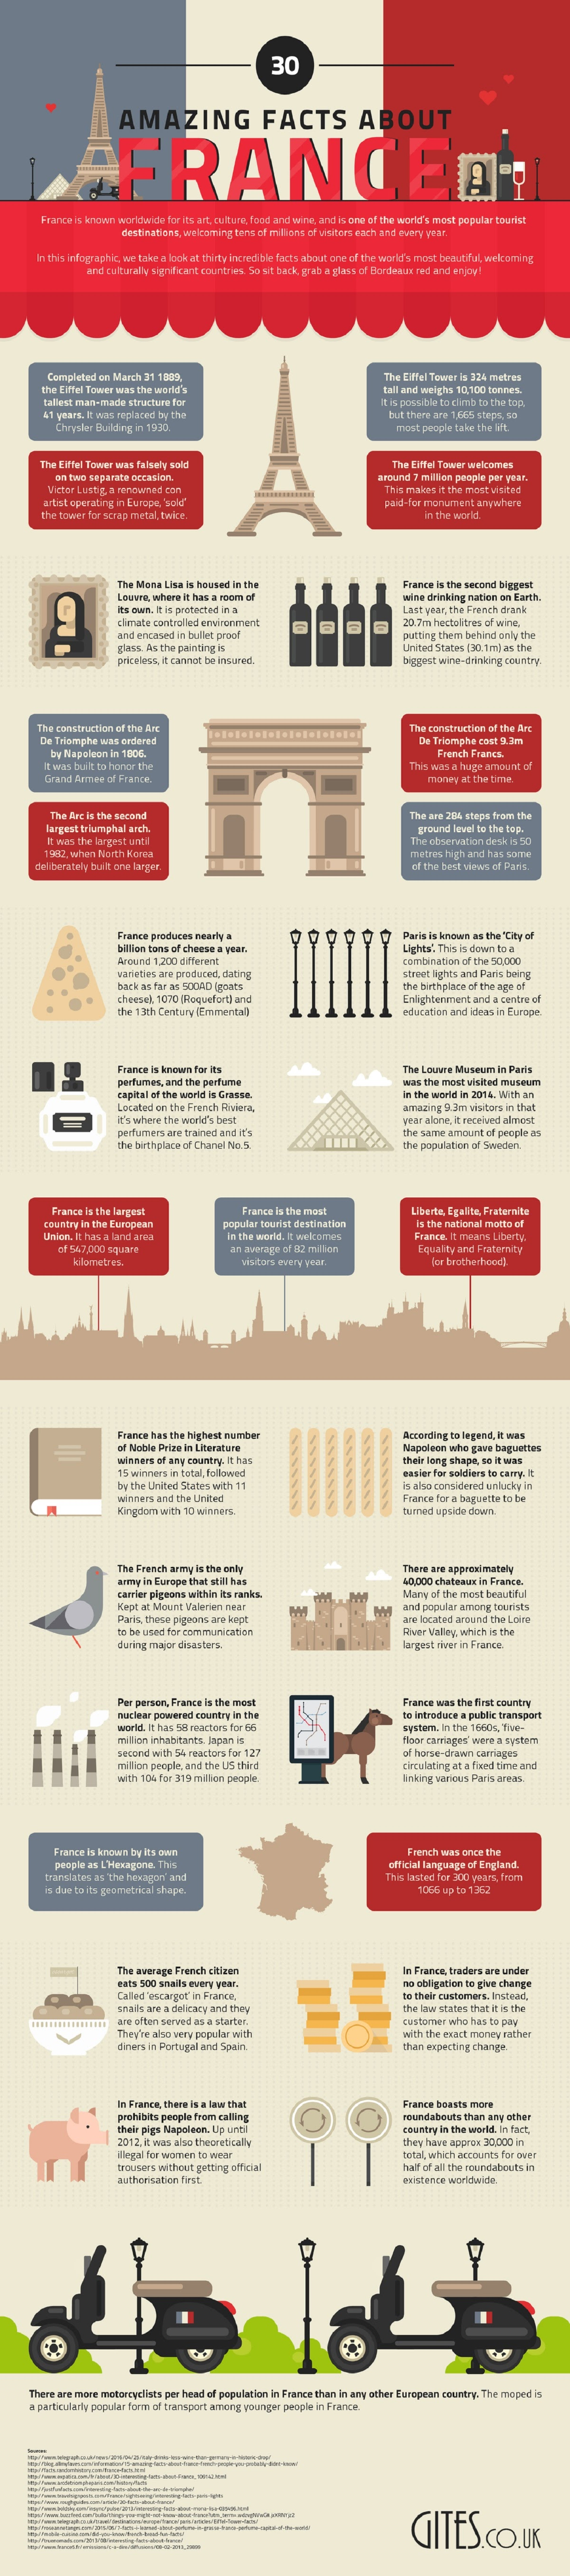 30-amazing-facts-about-france-infographic